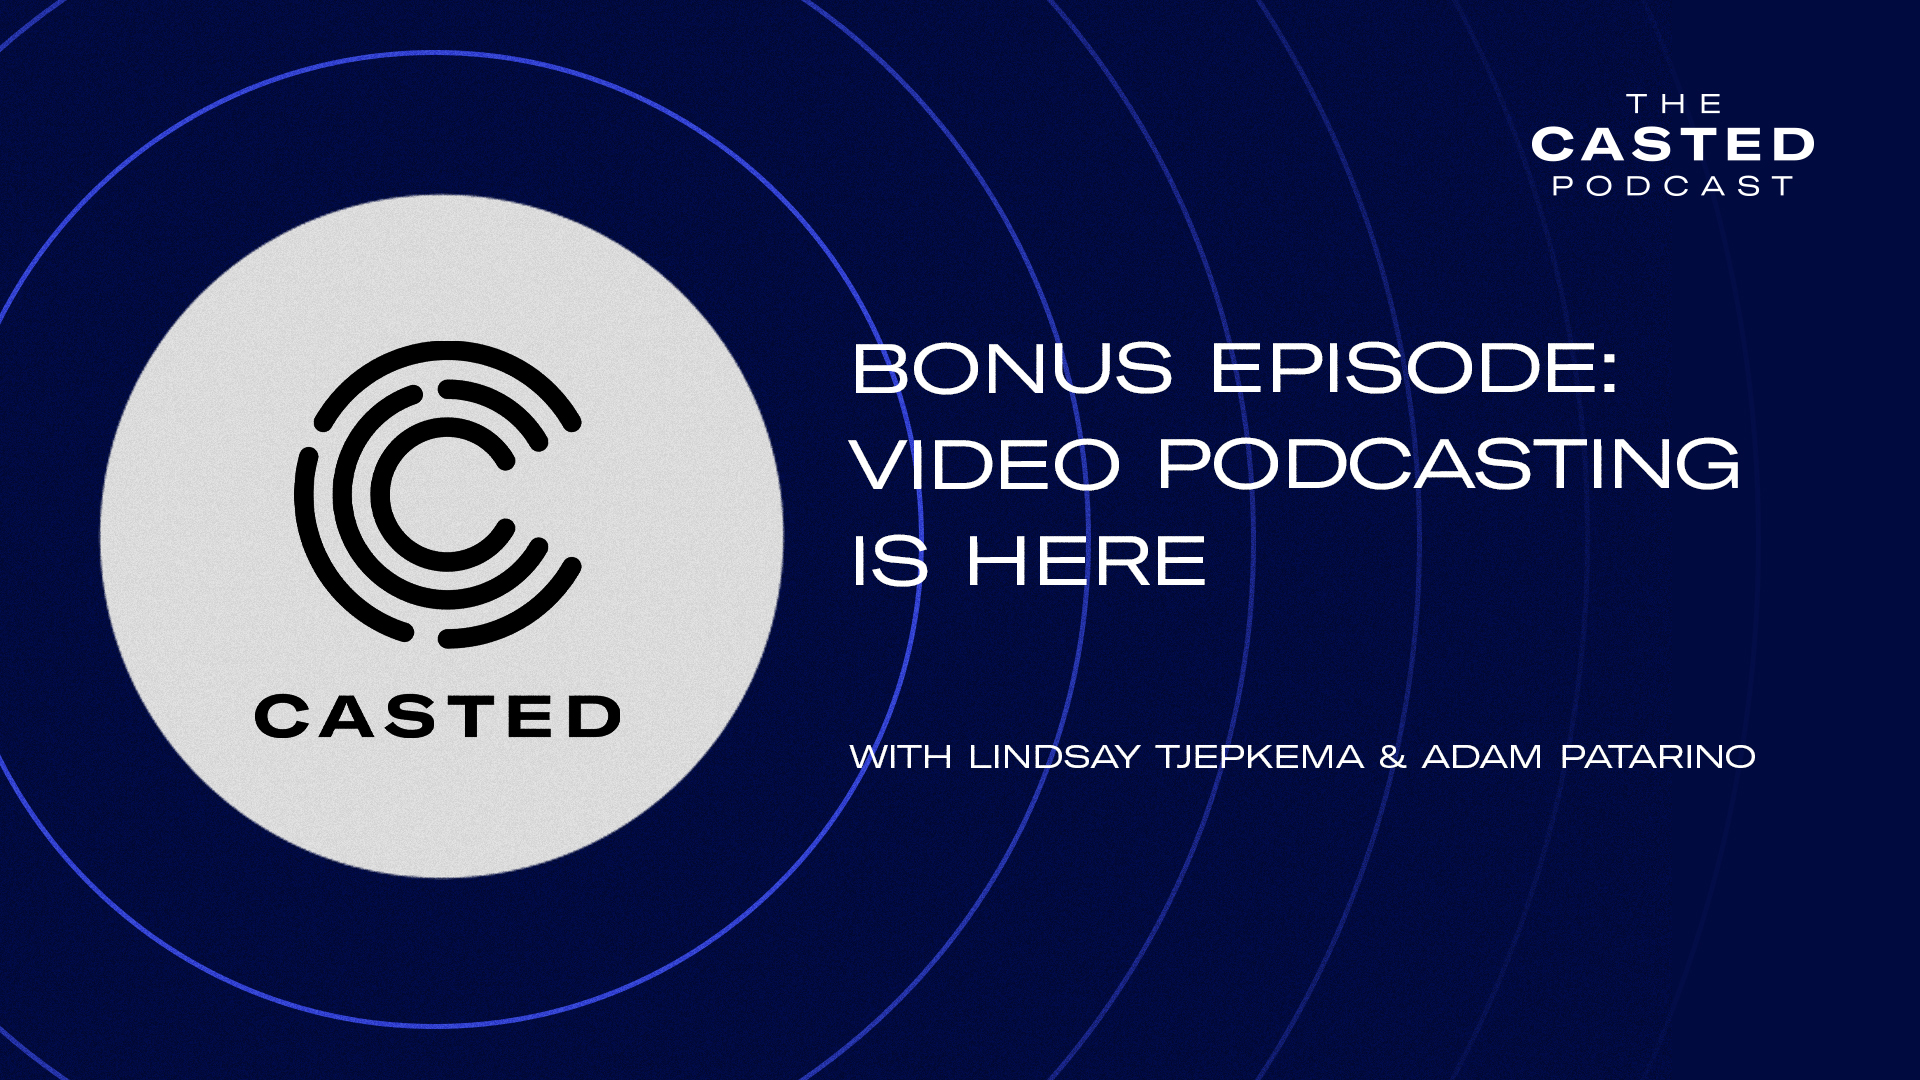 Video Podcasting is Here